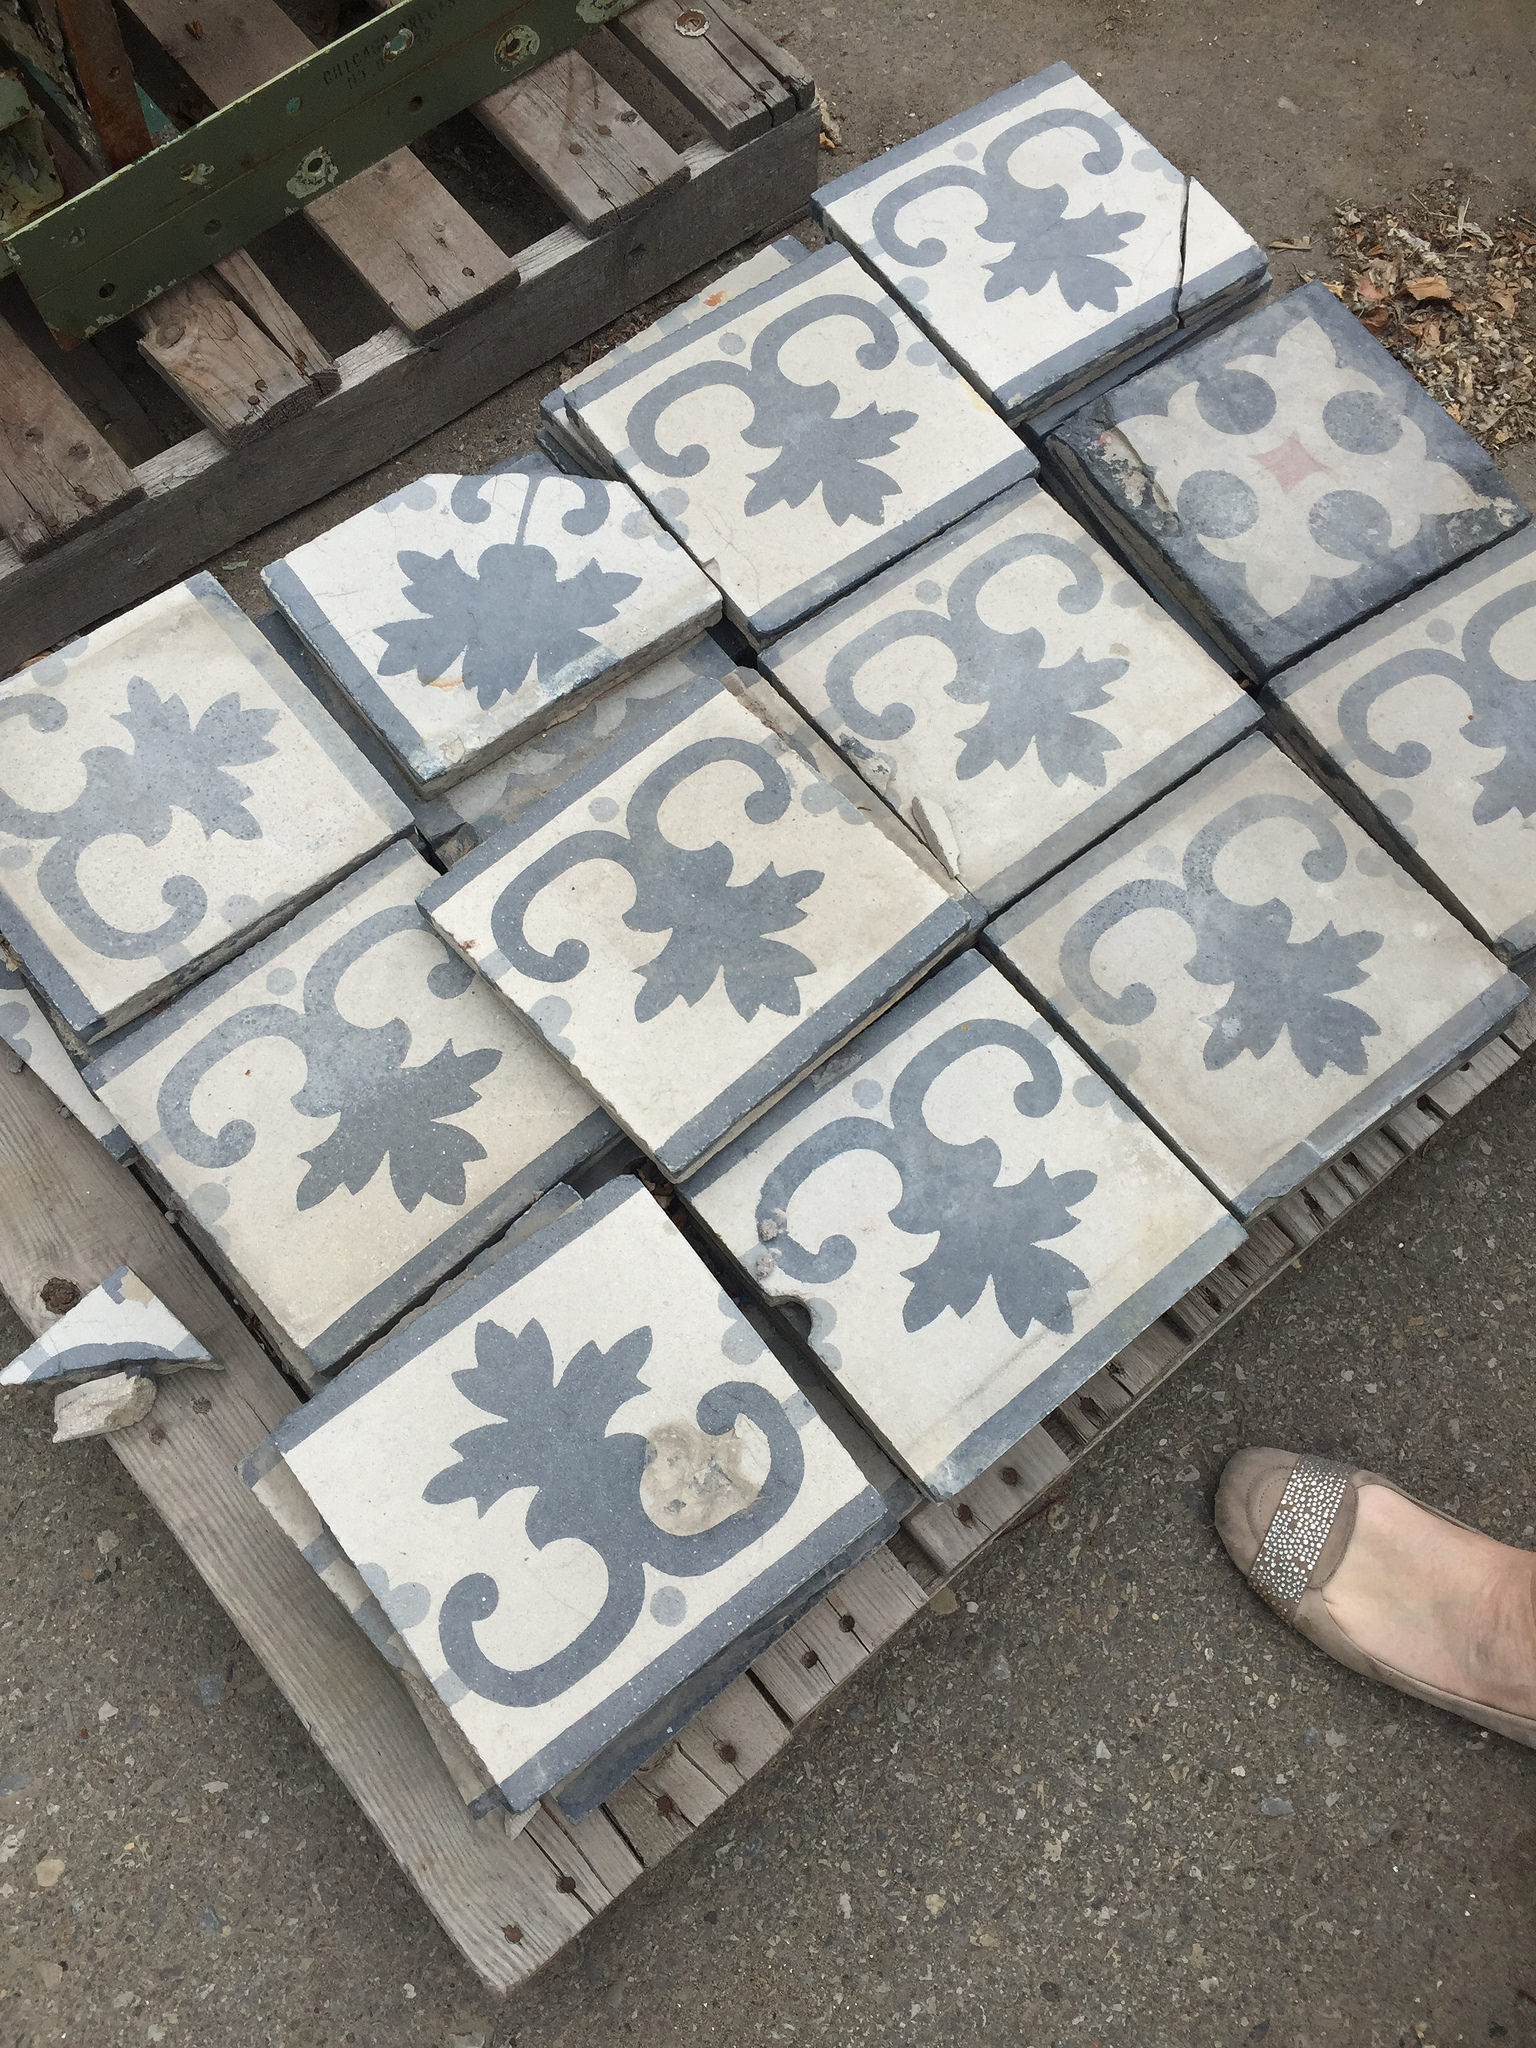 antique tiles from Uniquities in Calgary